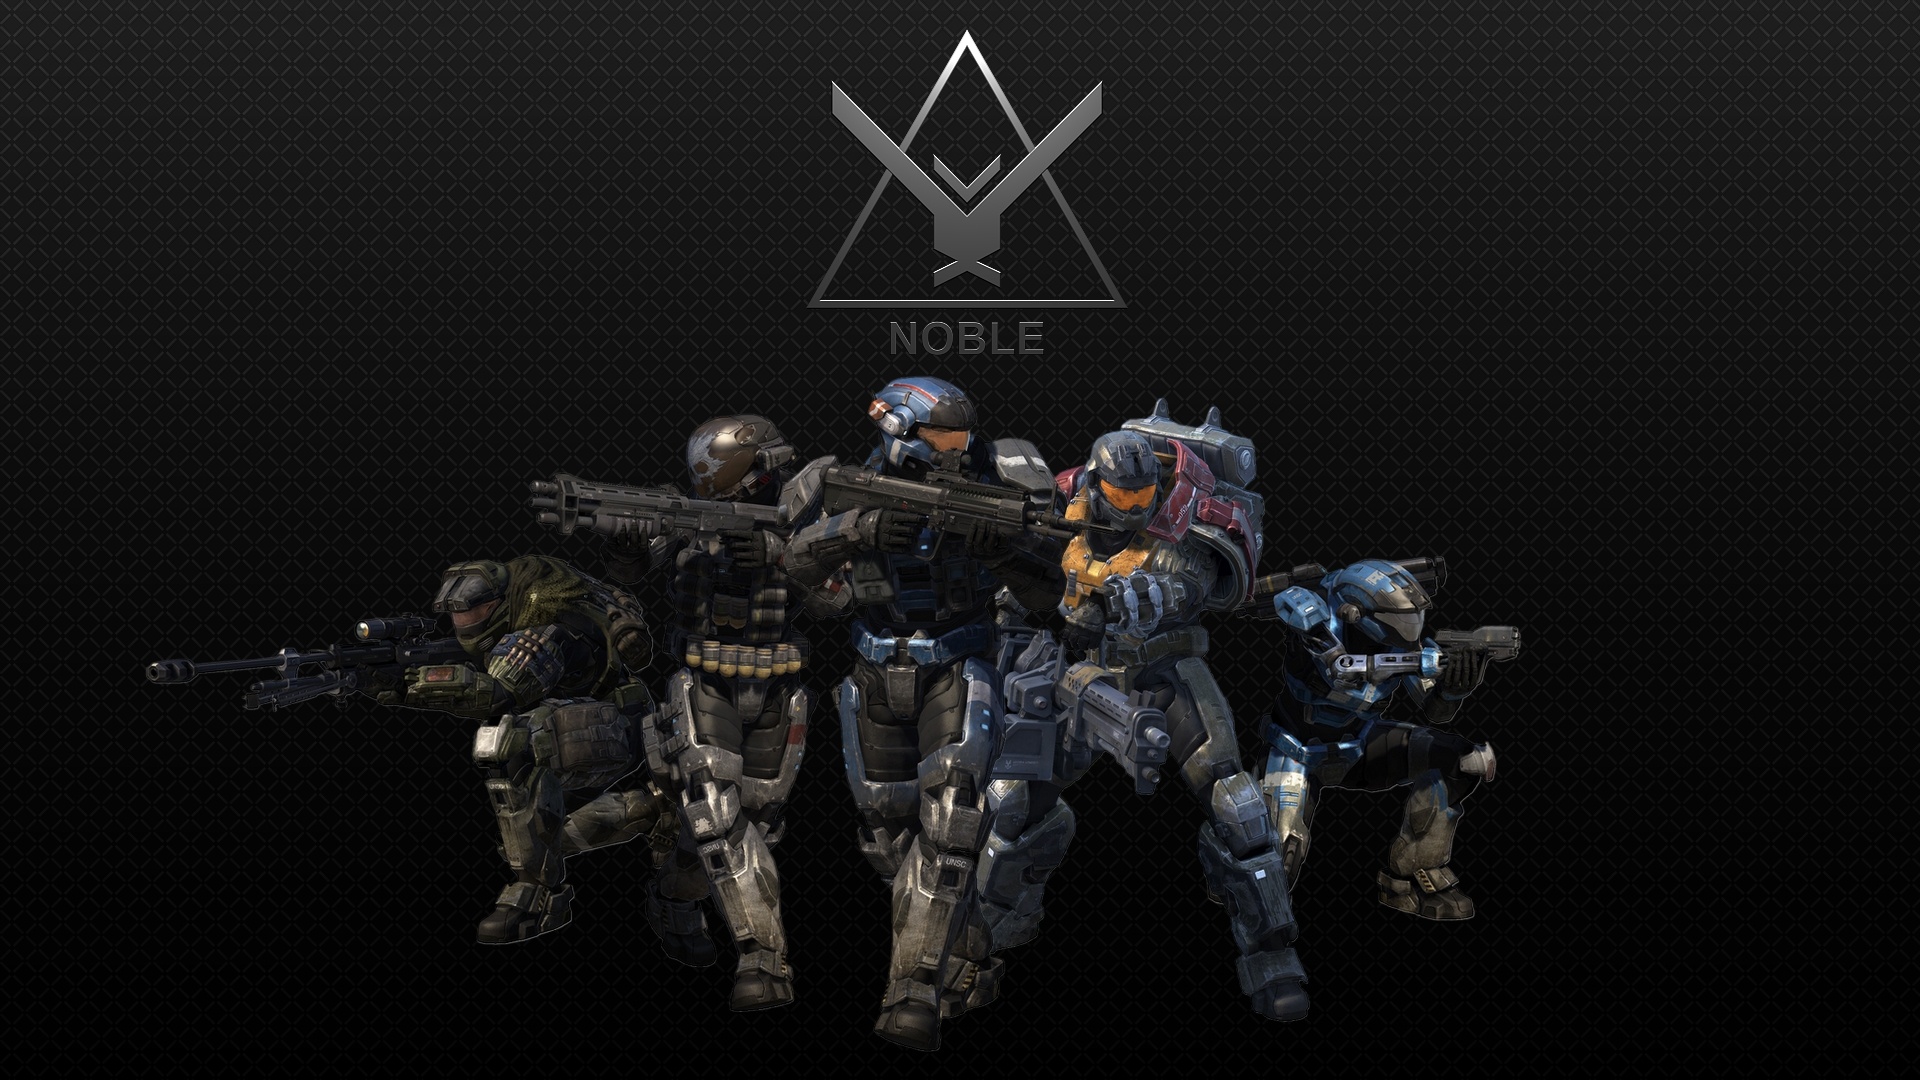 50+] Awesome Halo Reach Wallpapers on WallpaperSafari